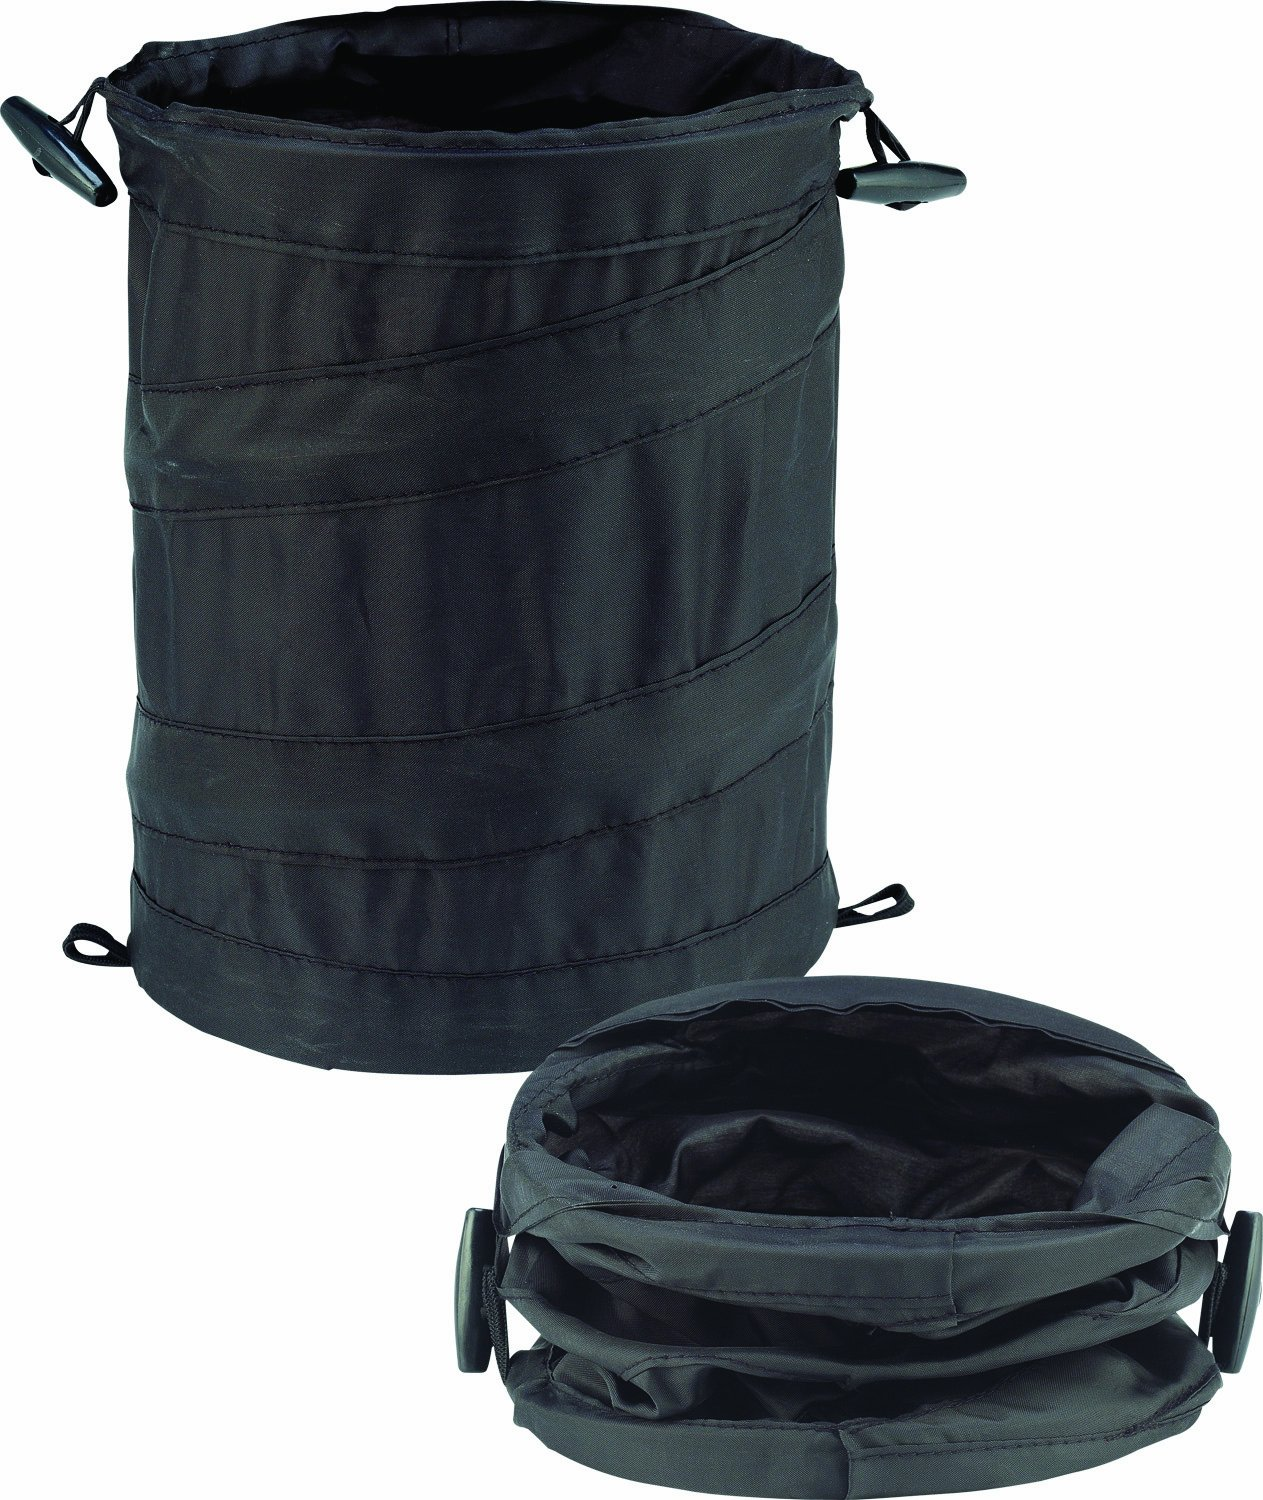 Bell Automotive 22-1-38996-8 Small Pop-Up Trash Can 7.5 inches x 6.5 inches